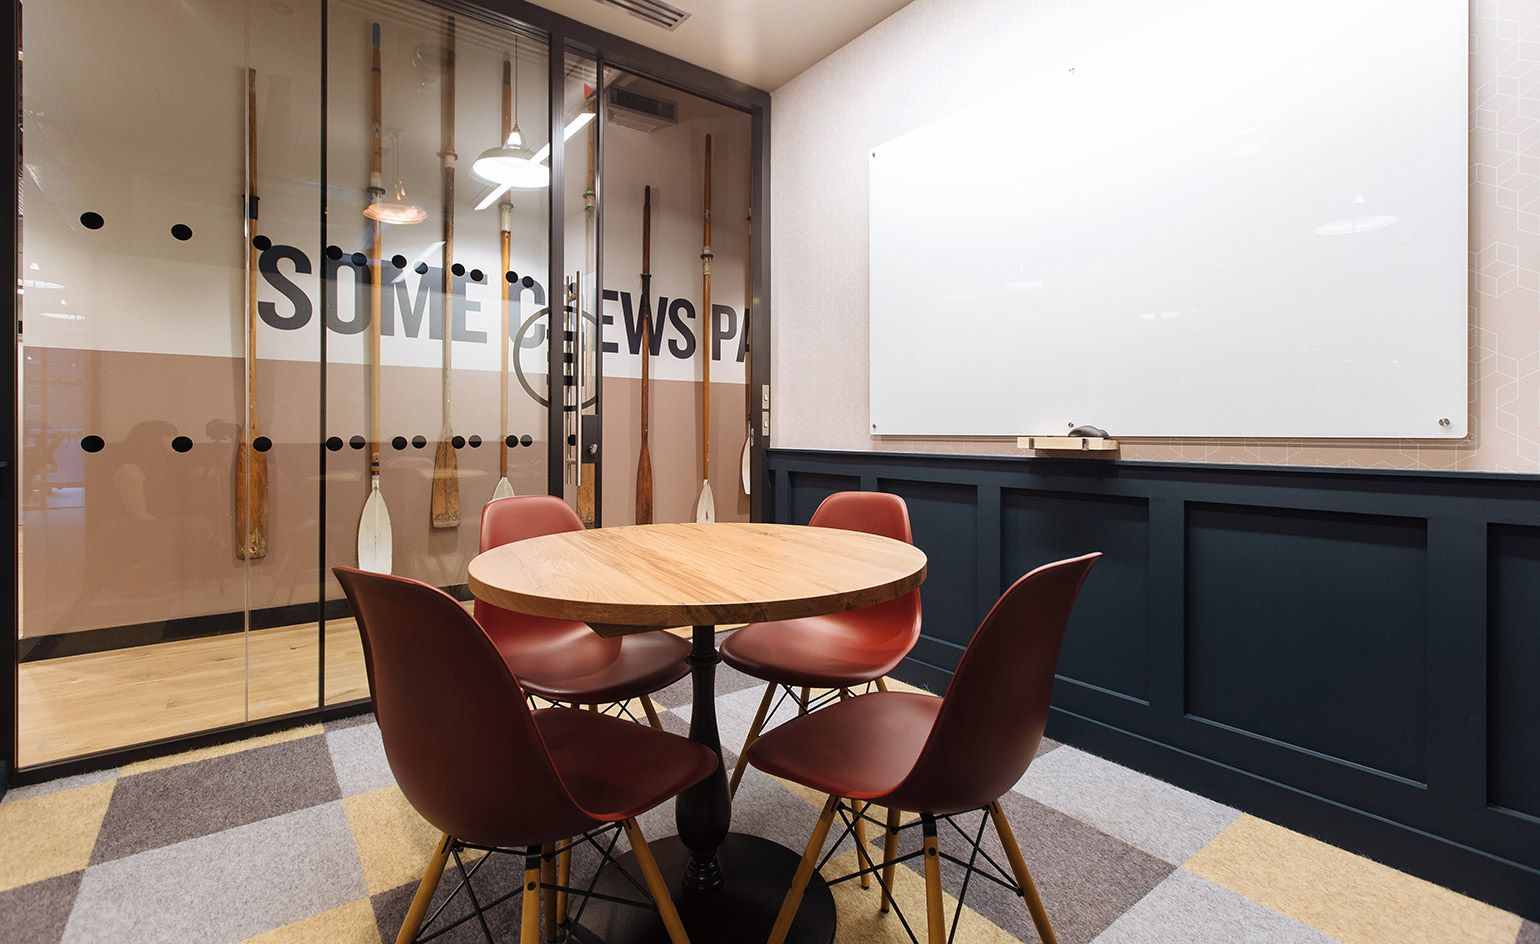 The craftiest co-working spaces around world